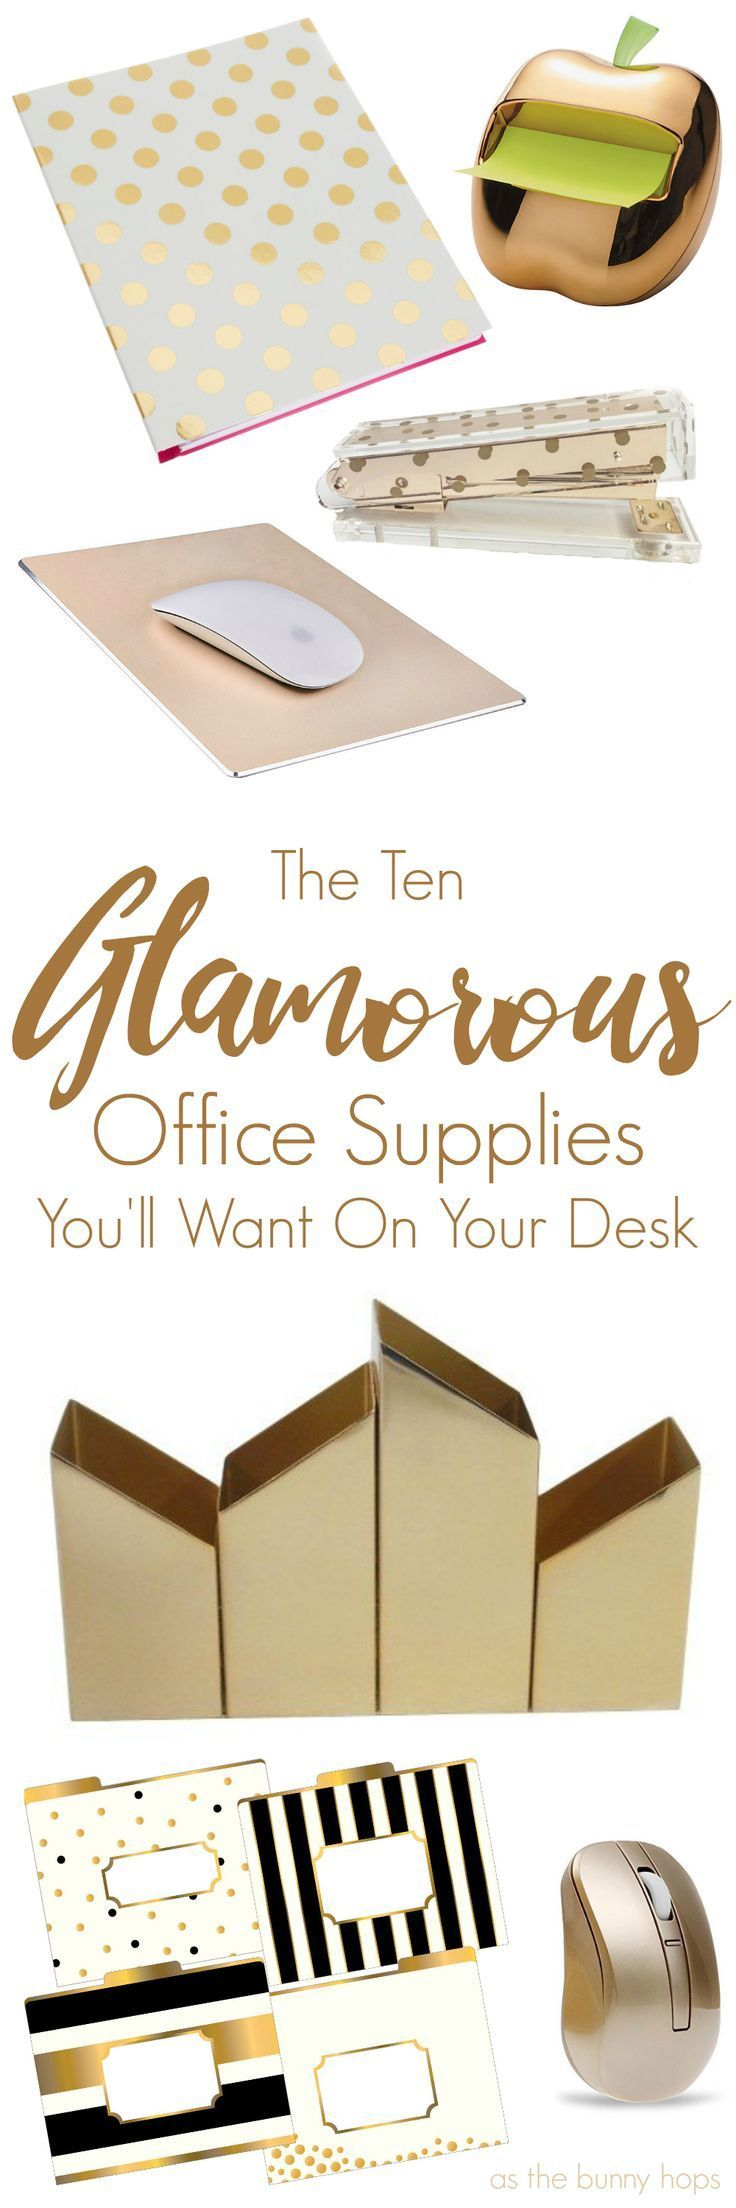 Womens Office Desk Accessories   Ashley Furniture Home Office Check More At  Http://www.drjamesghoodblog.com/womens Office Desk Accessories/ | Pinterest  ...